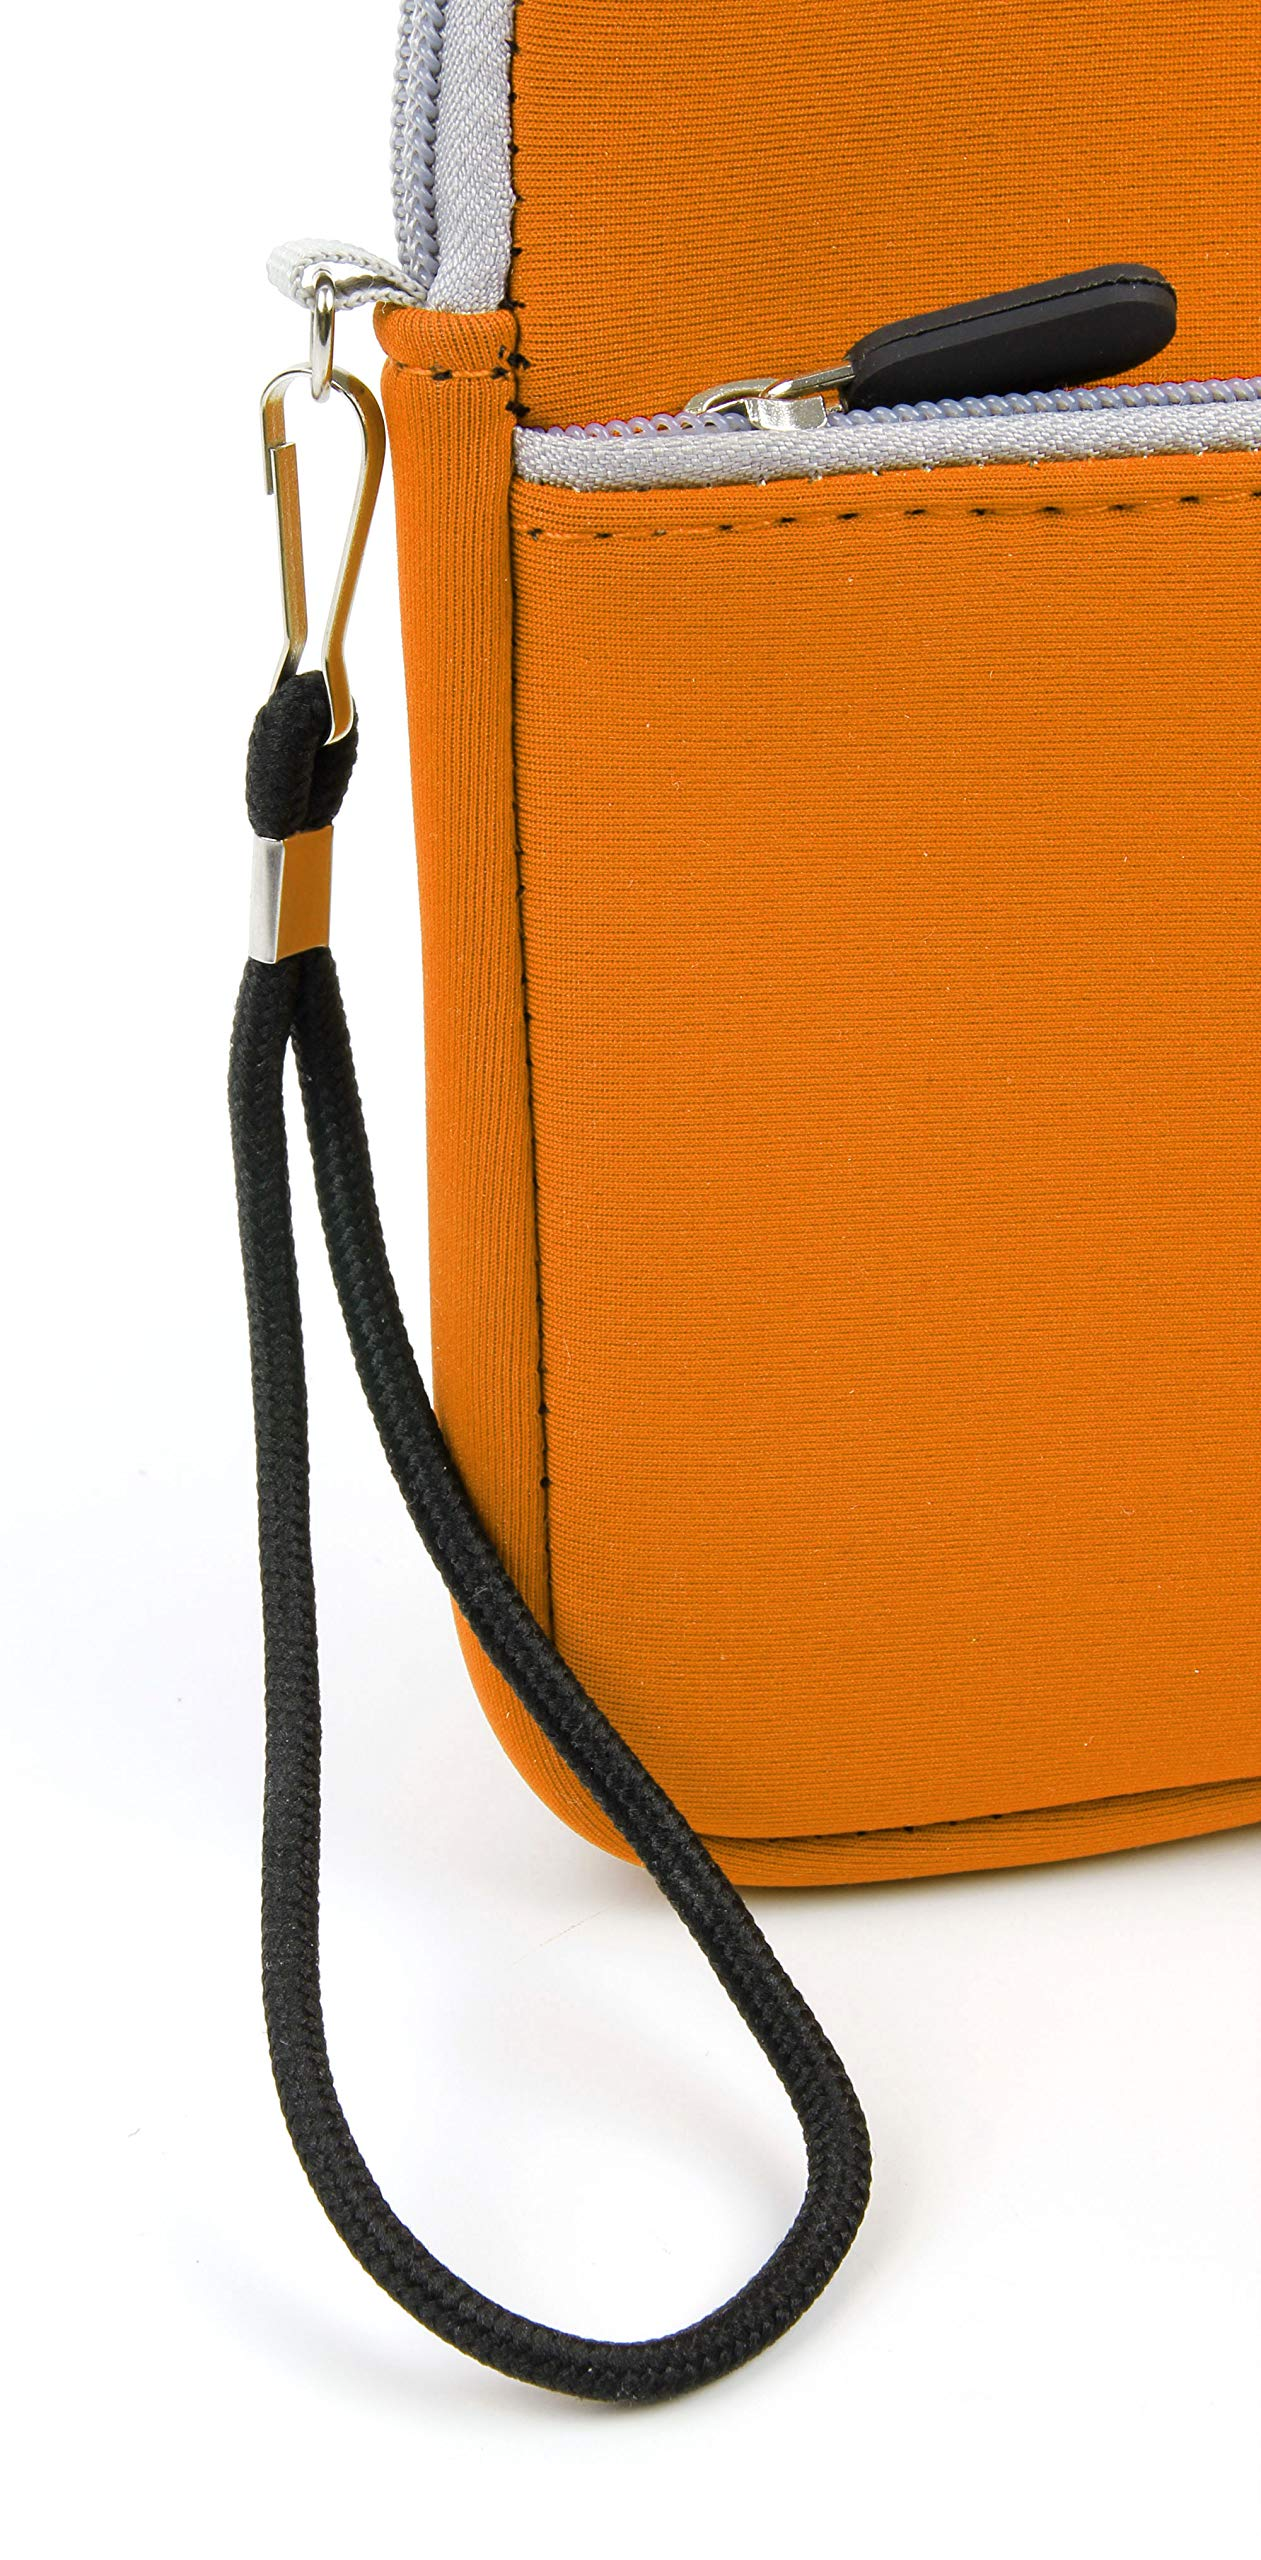 DURAGADGET Durable Orange Case - Suitable for Leapfrog LeapPad Ultra | Leappad Platinum | LeapPad3x | LeapPad3 | LeapPad Ultra XDI | Leappad2 (Leappad 2) | Leappad Explorer (1) with Front Zip Pocket by DURAGADGET (Image #5)